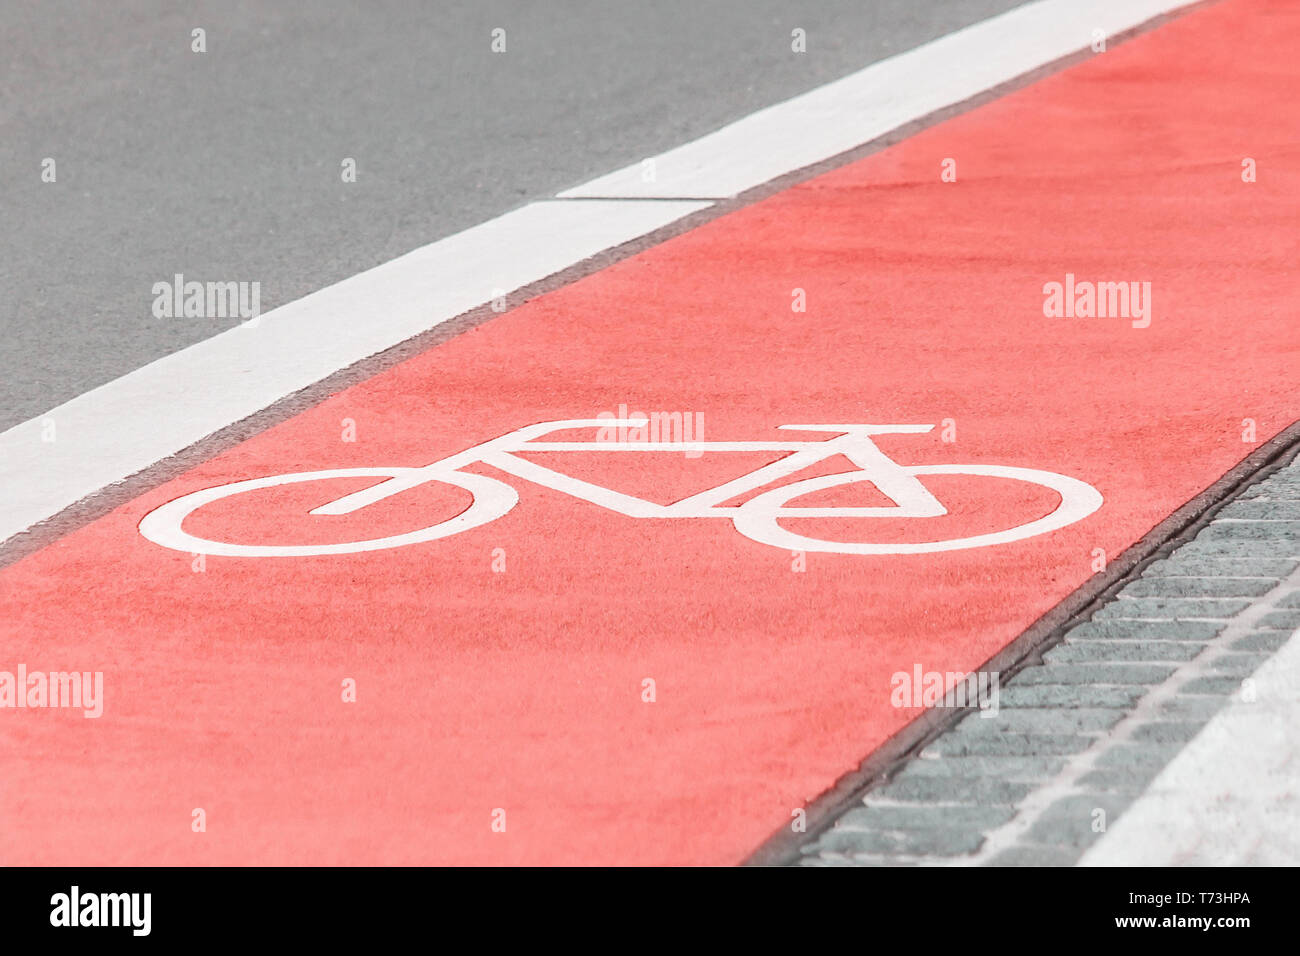 Bicycle path with a bicycle symbol on the asphalt road. Pink coral color Stock Photo